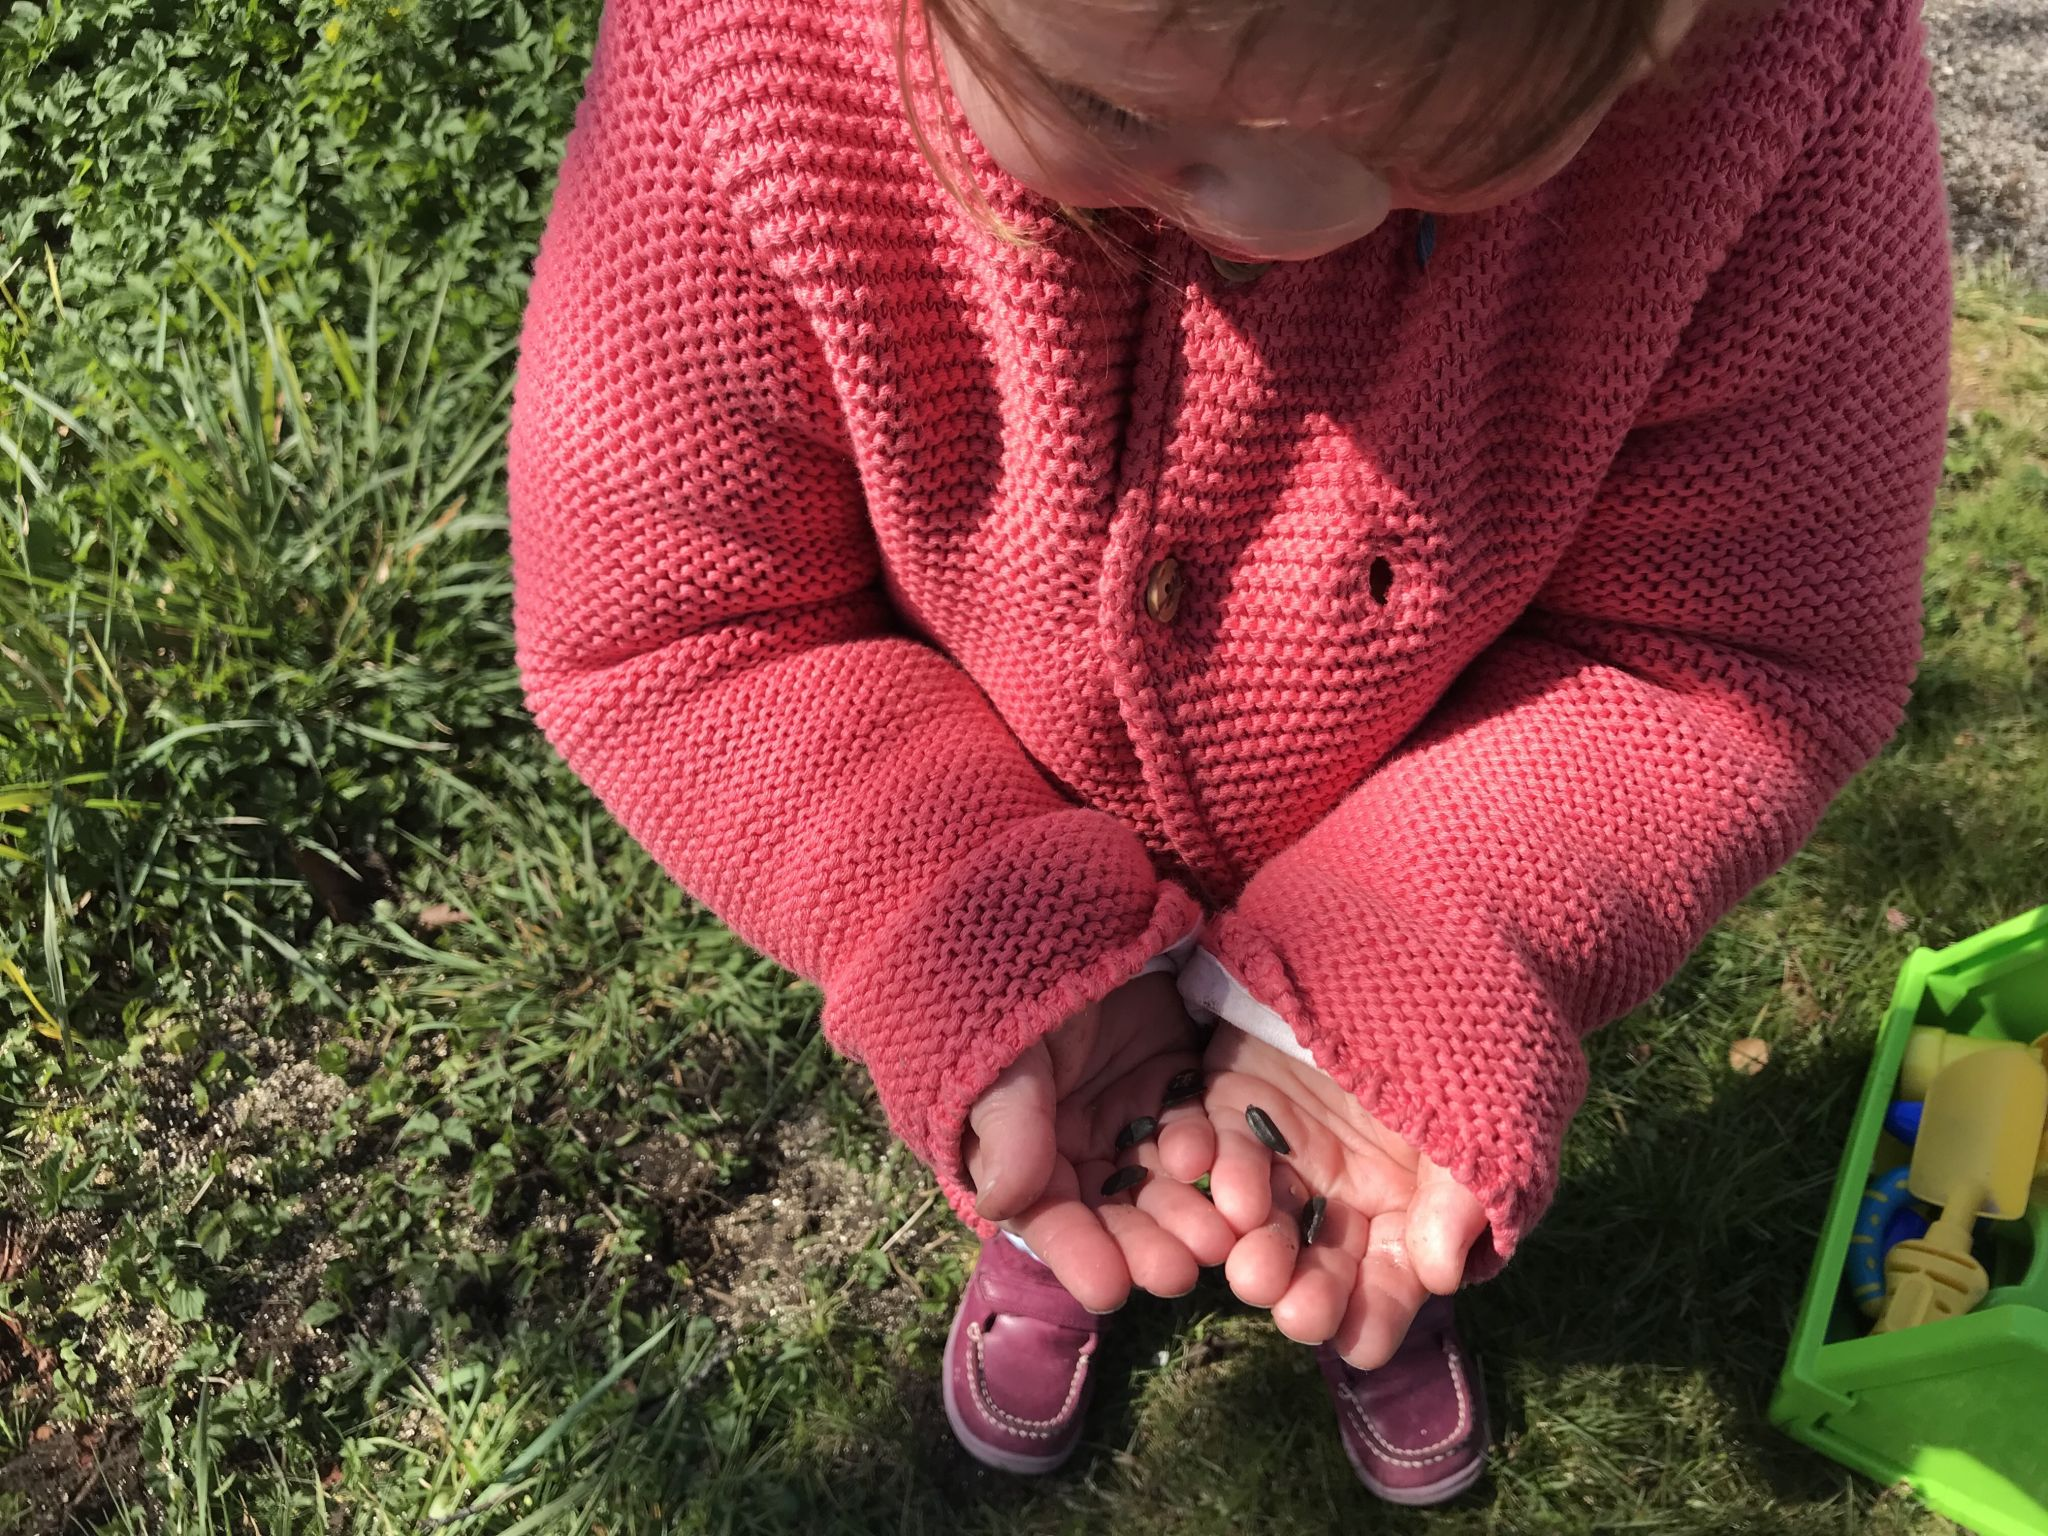 A small child holding sunflower seeds